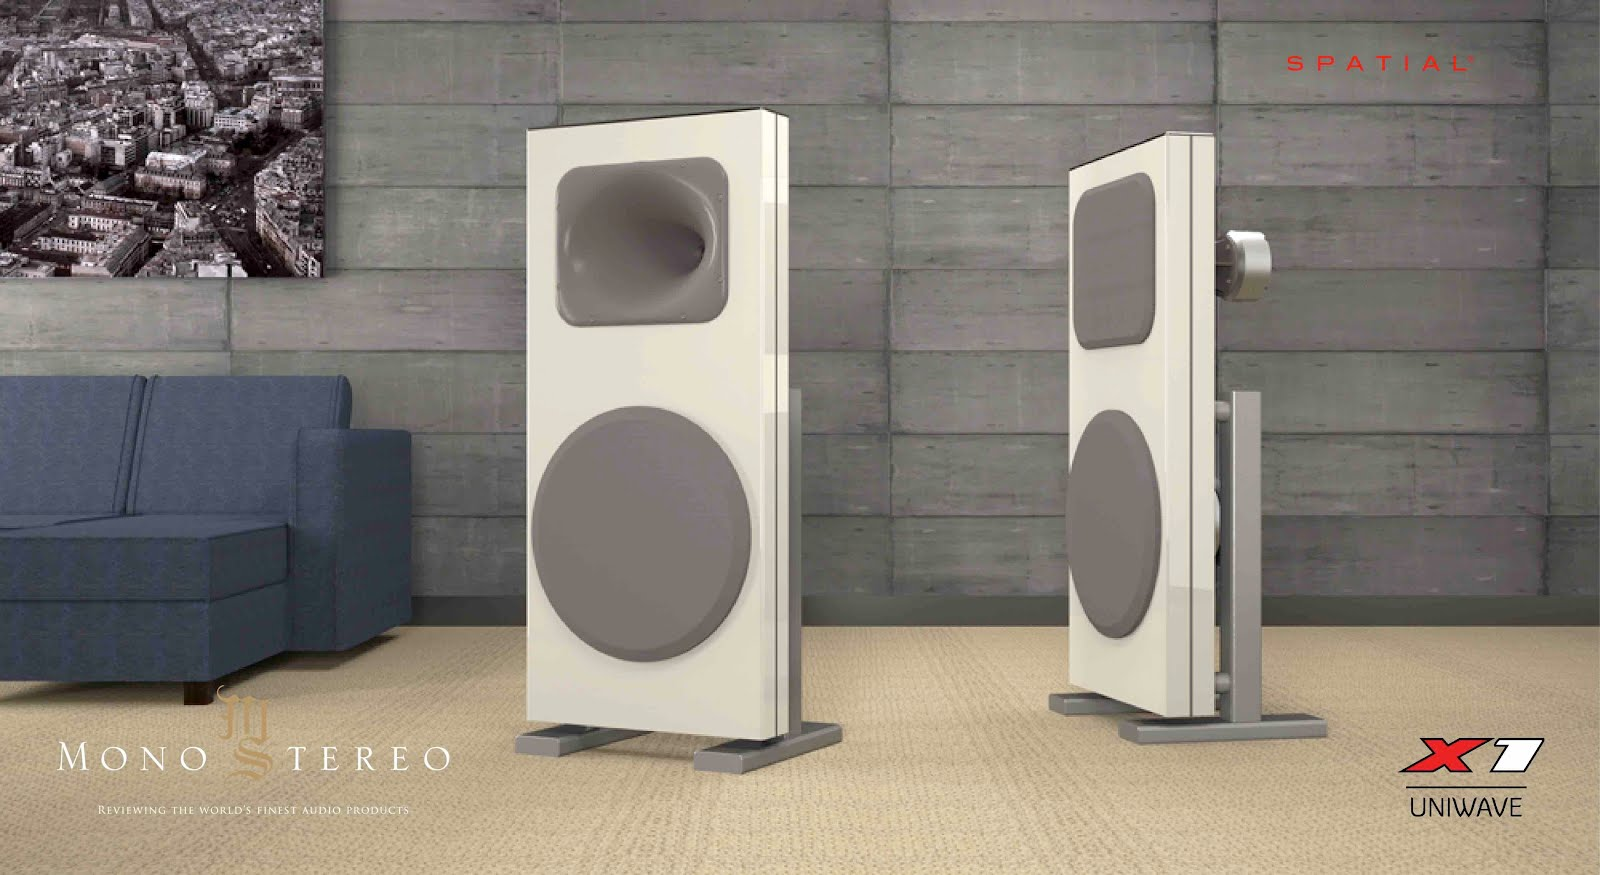 Mono and Stereo High-End Audio Magazine: Spatial Audio X1 Uniwave